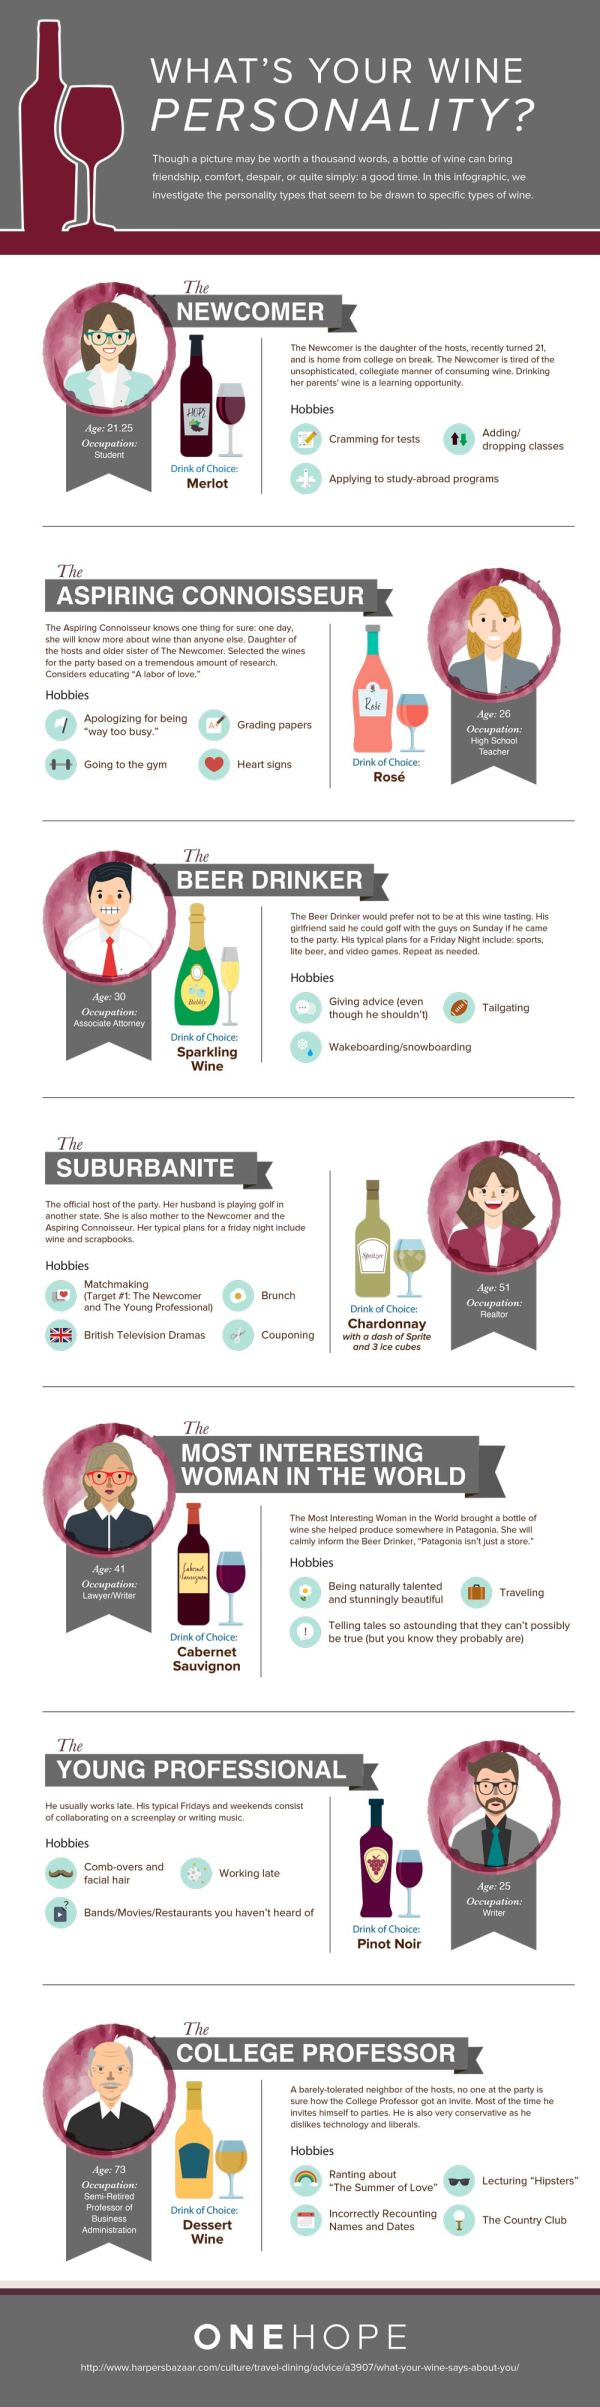 what-is-your-wine-personality